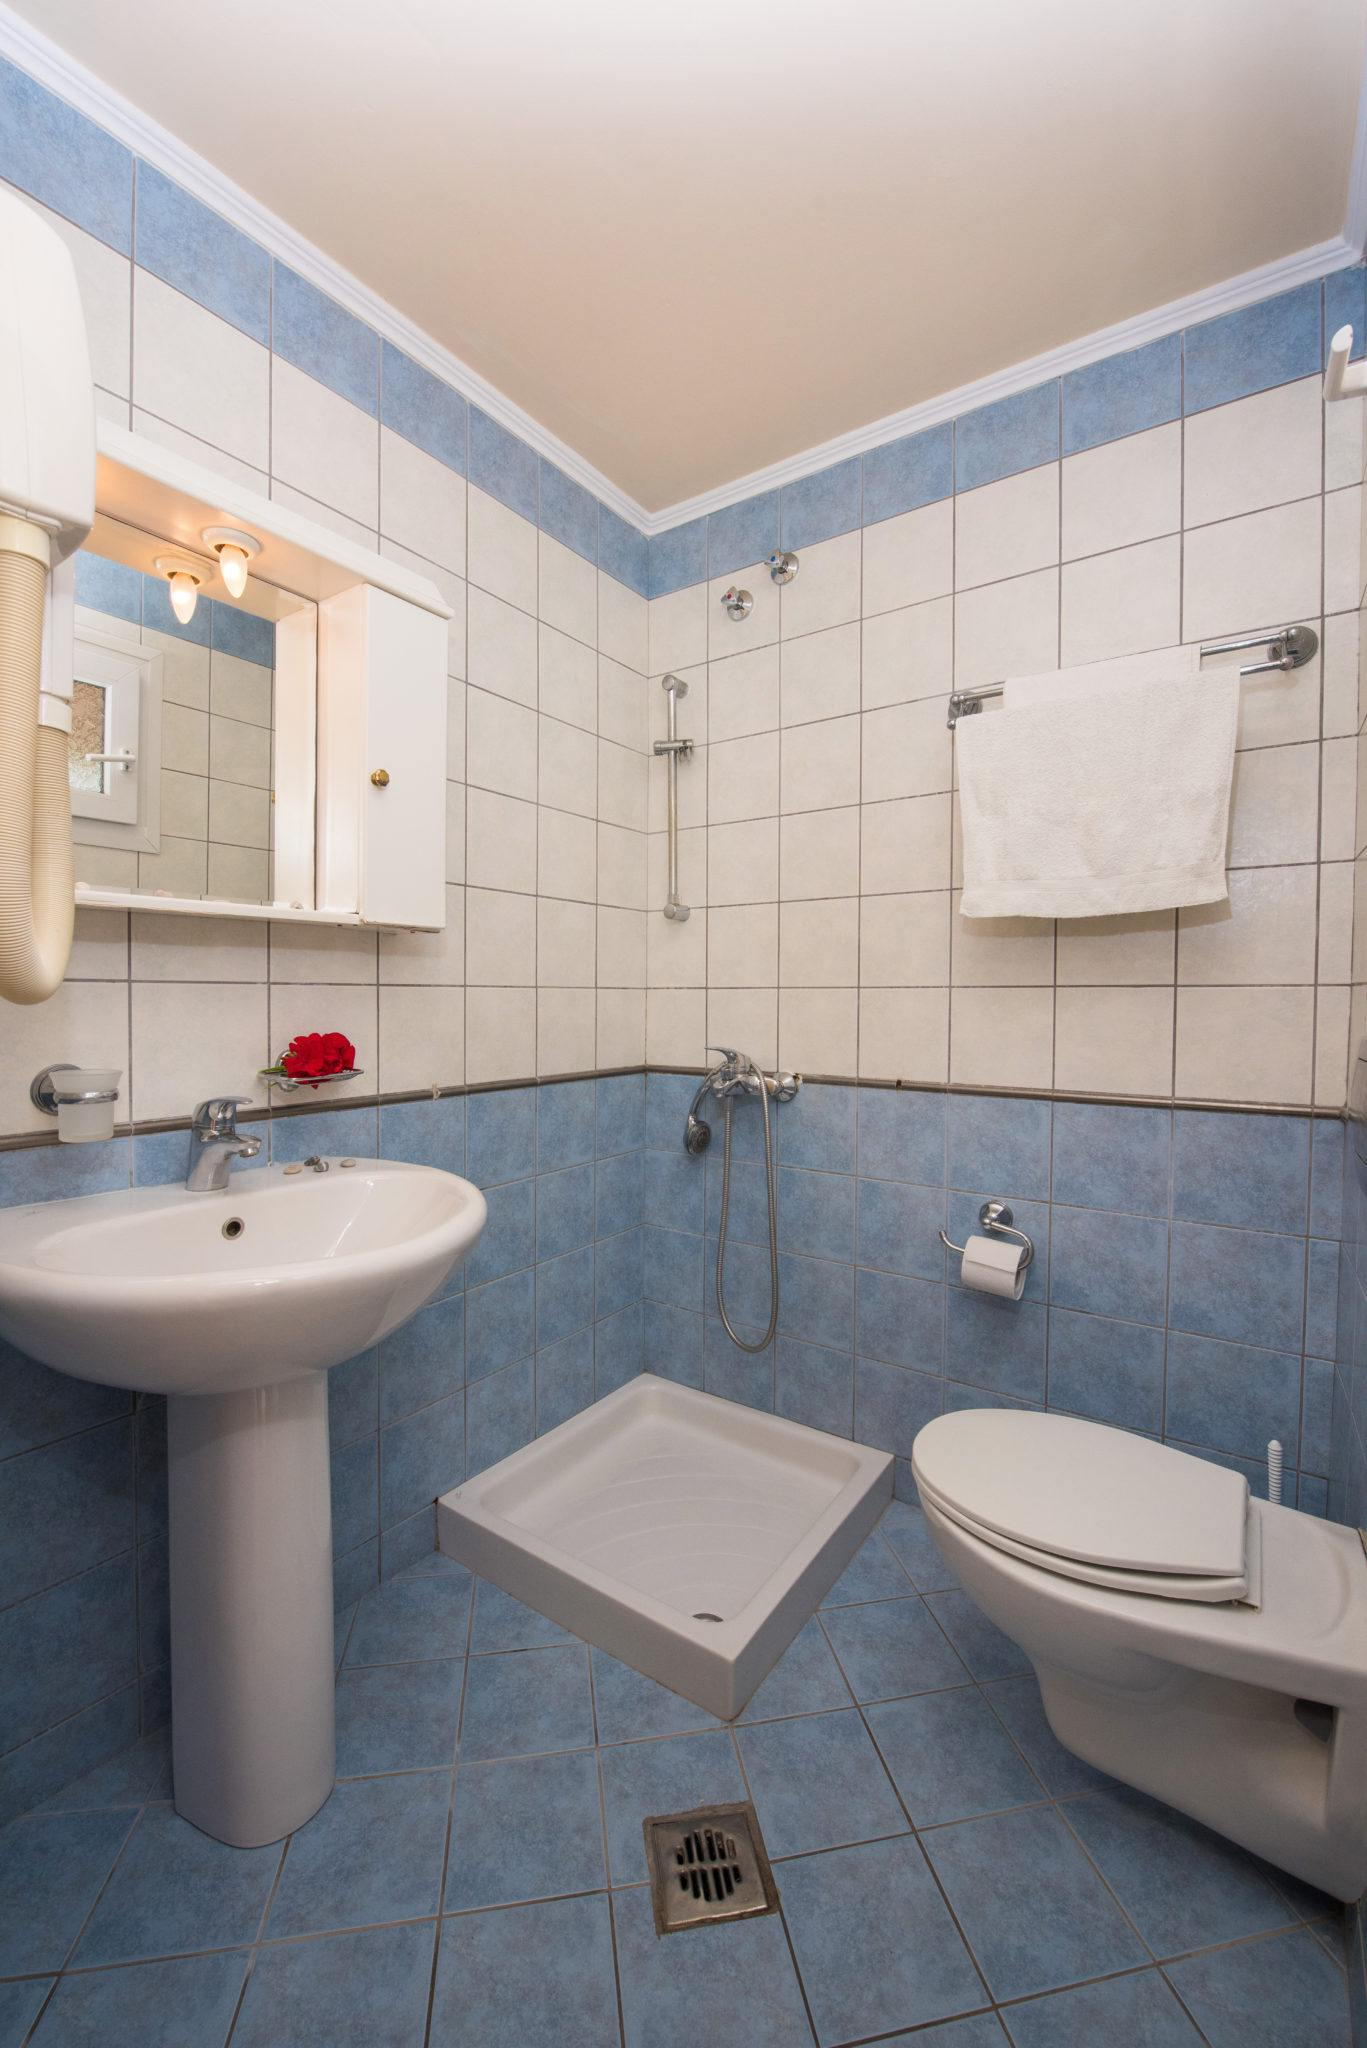 Dominoes standart double room -bathroom - Cheap accommodation.